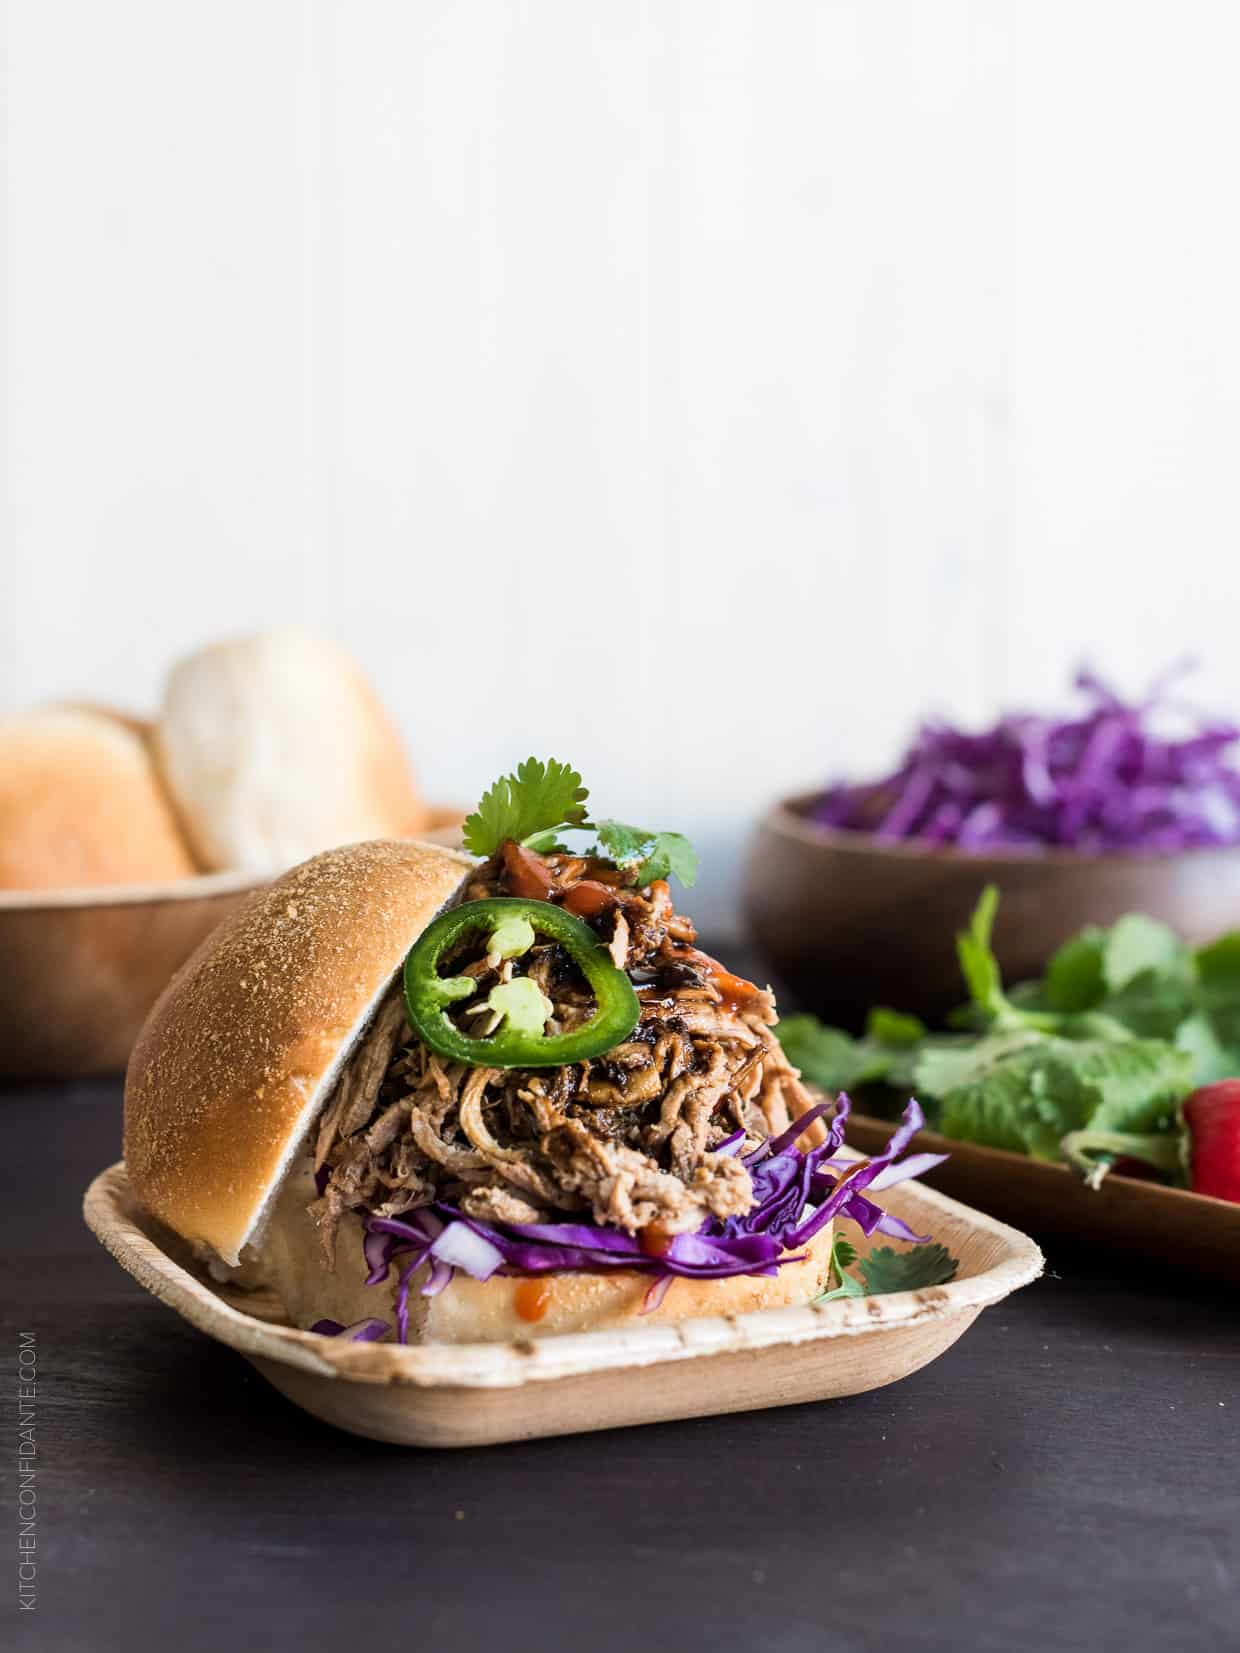 Slow Cooker Filipino Adobo-style Pulled Pork Sandwiches